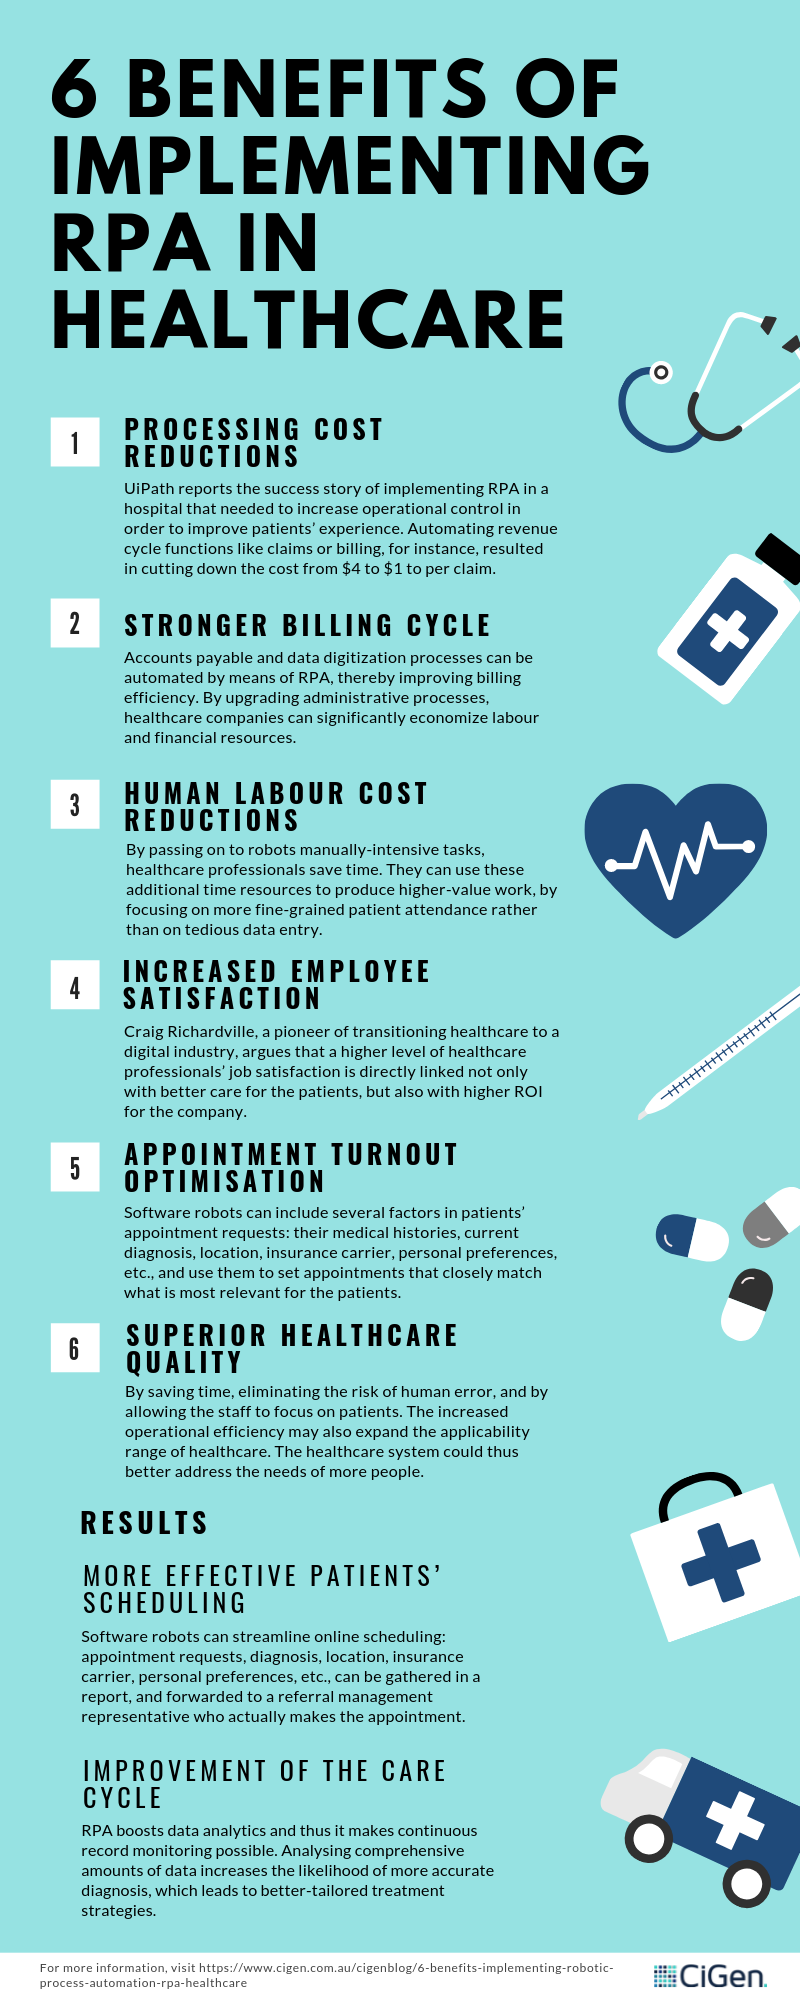 6 Benefits of Implementing RPA in Healthcare